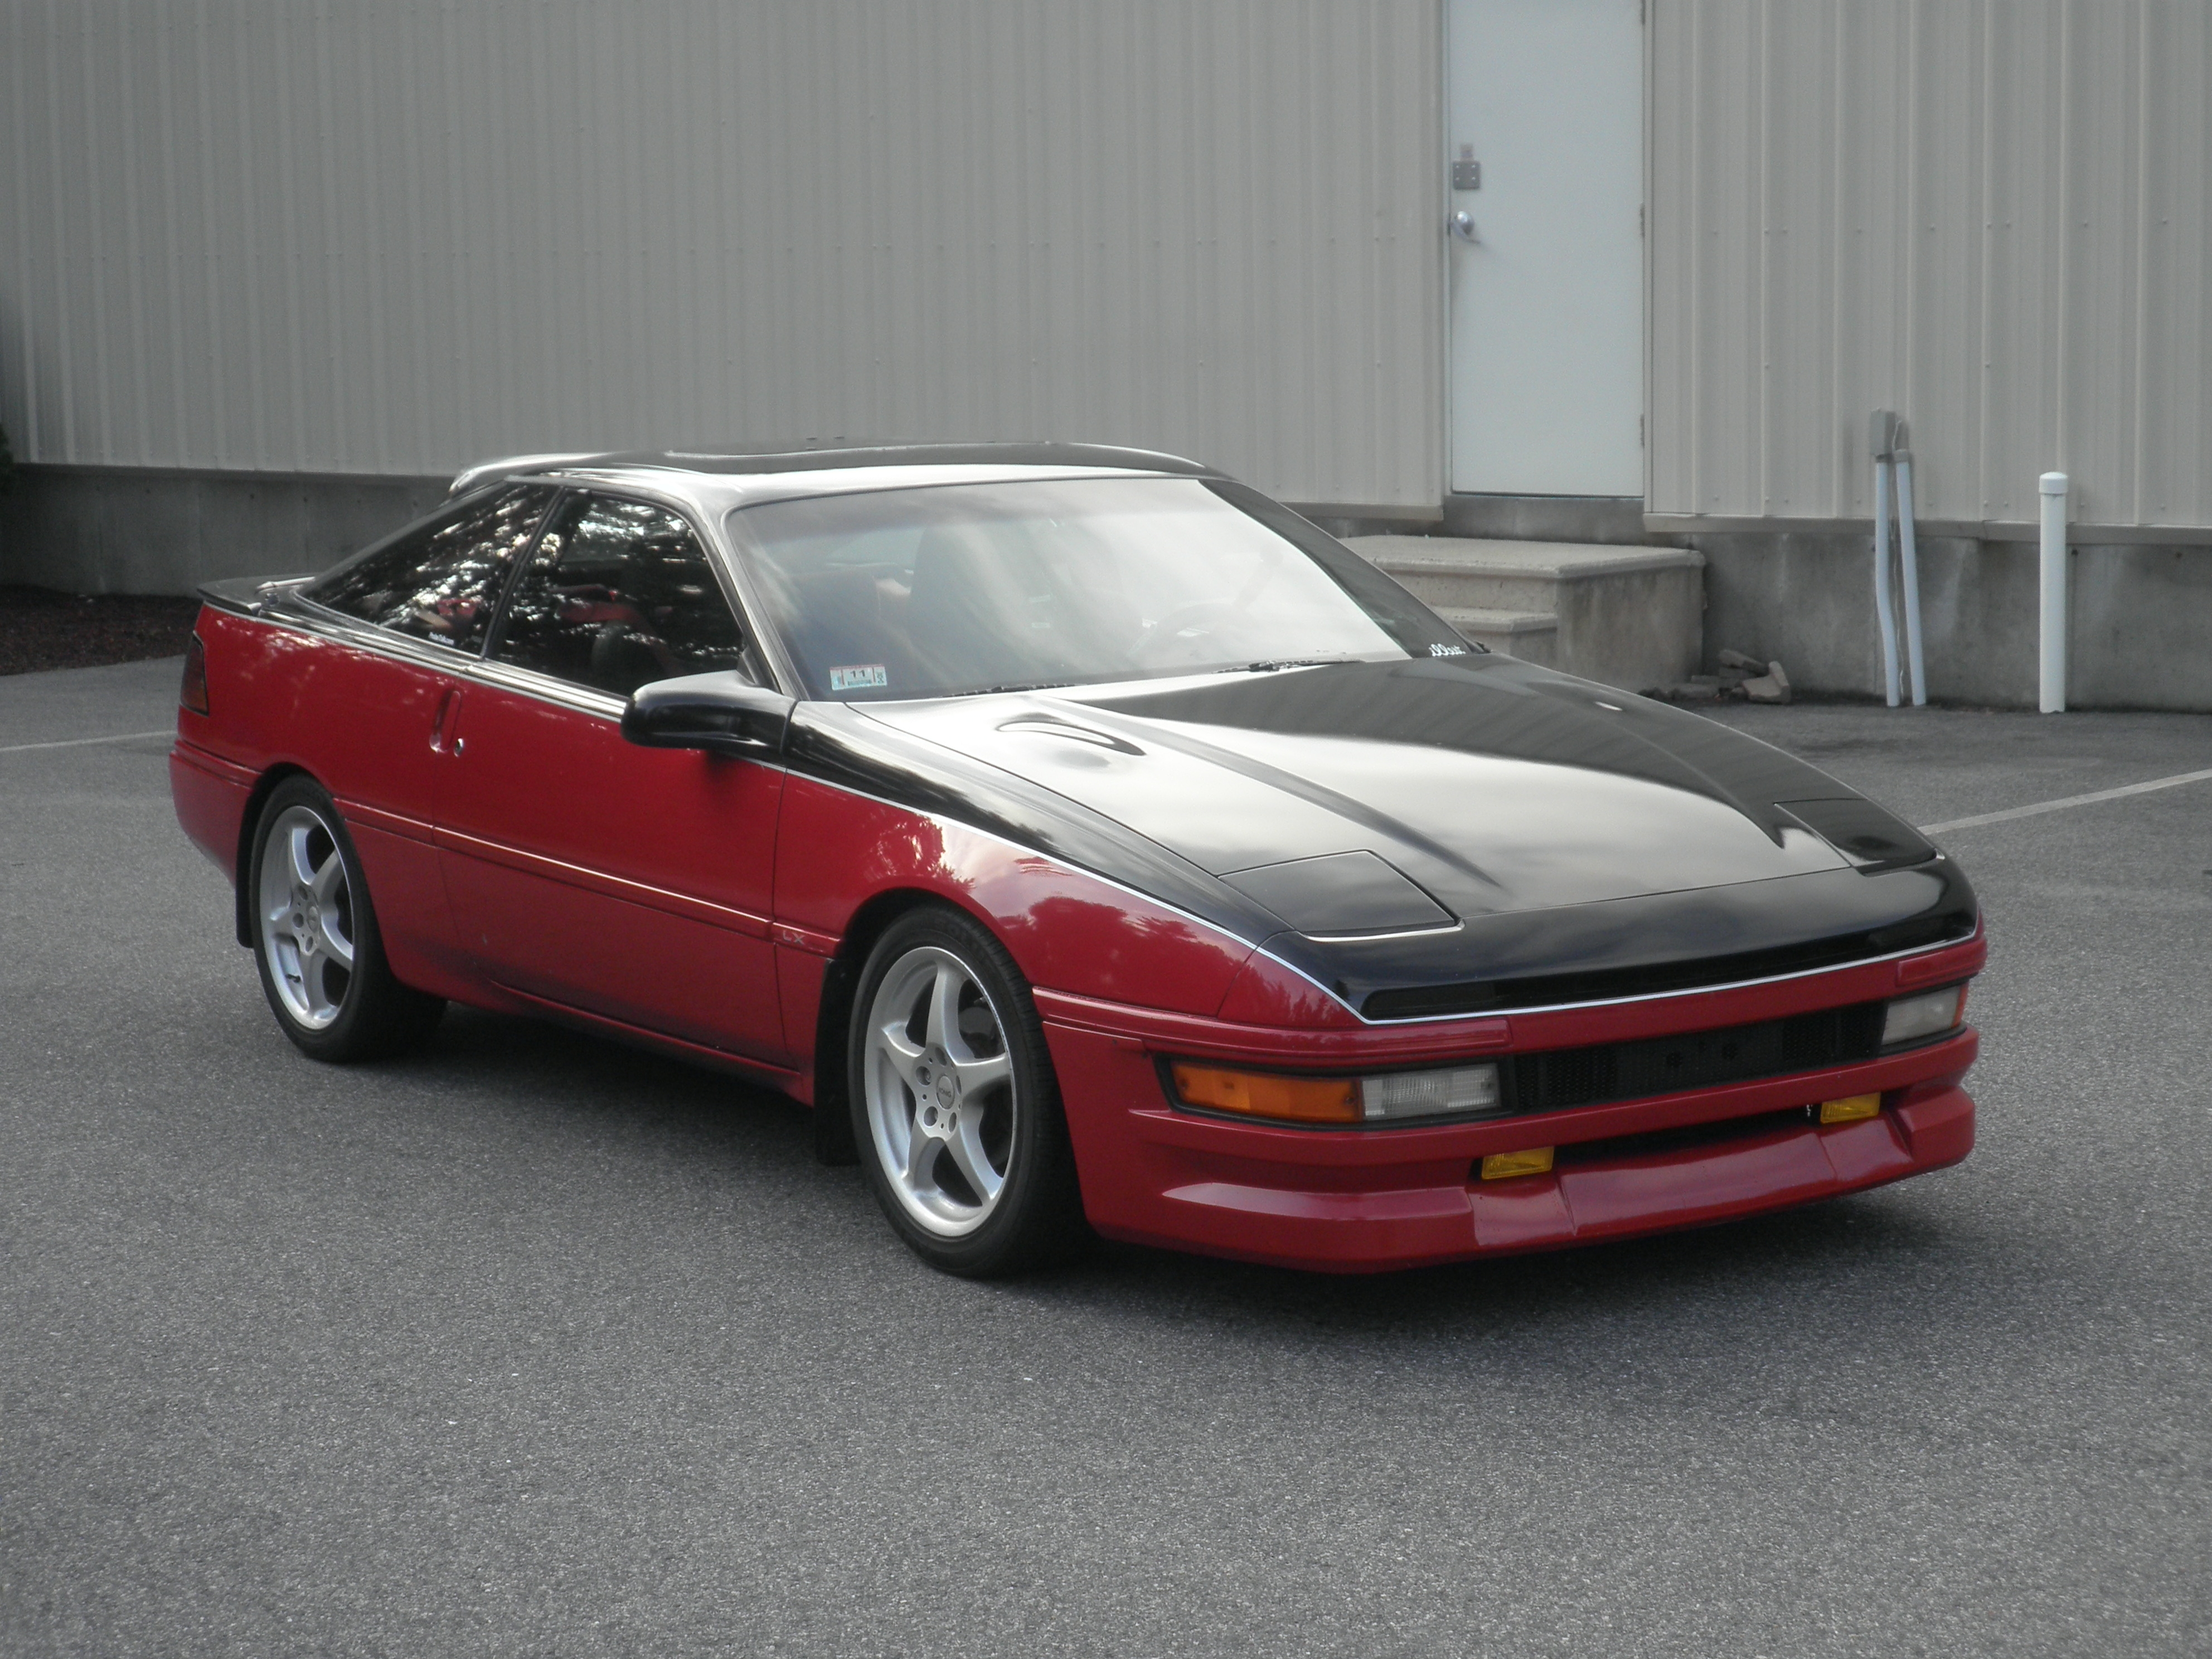 plx92 1992 ford probe specs photos modification info at cardomain. Black Bedroom Furniture Sets. Home Design Ideas